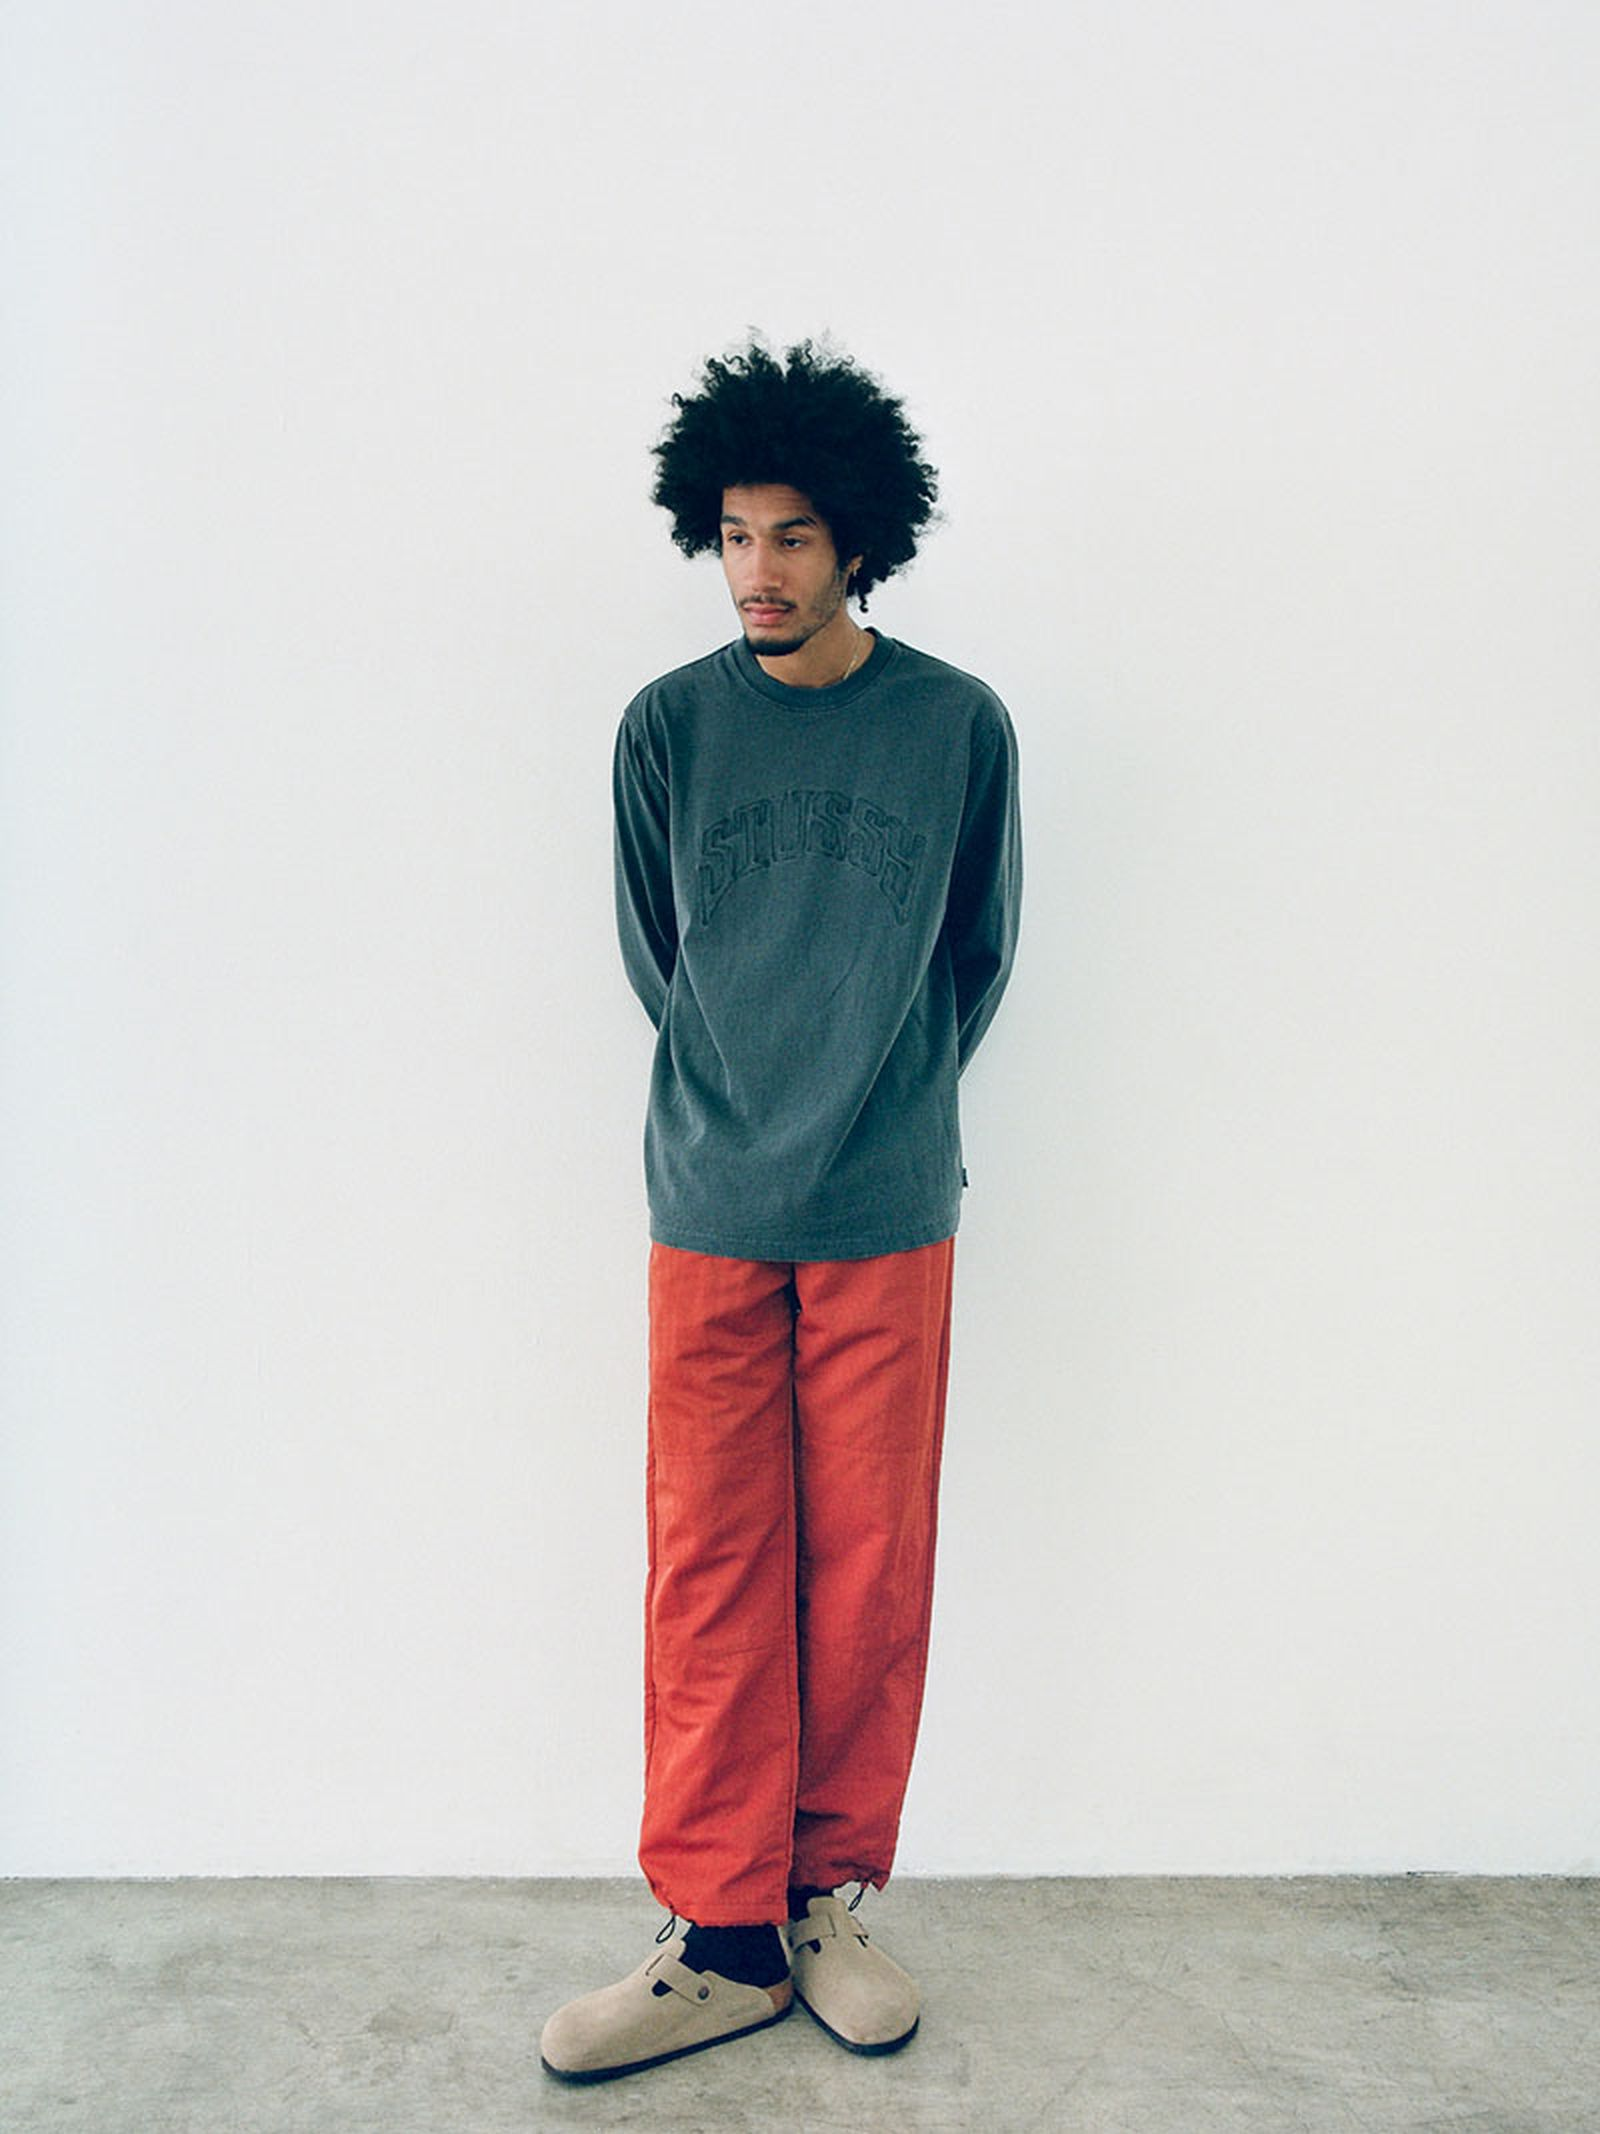 Stussy SP20 Lookbook - D1 Mens - 3